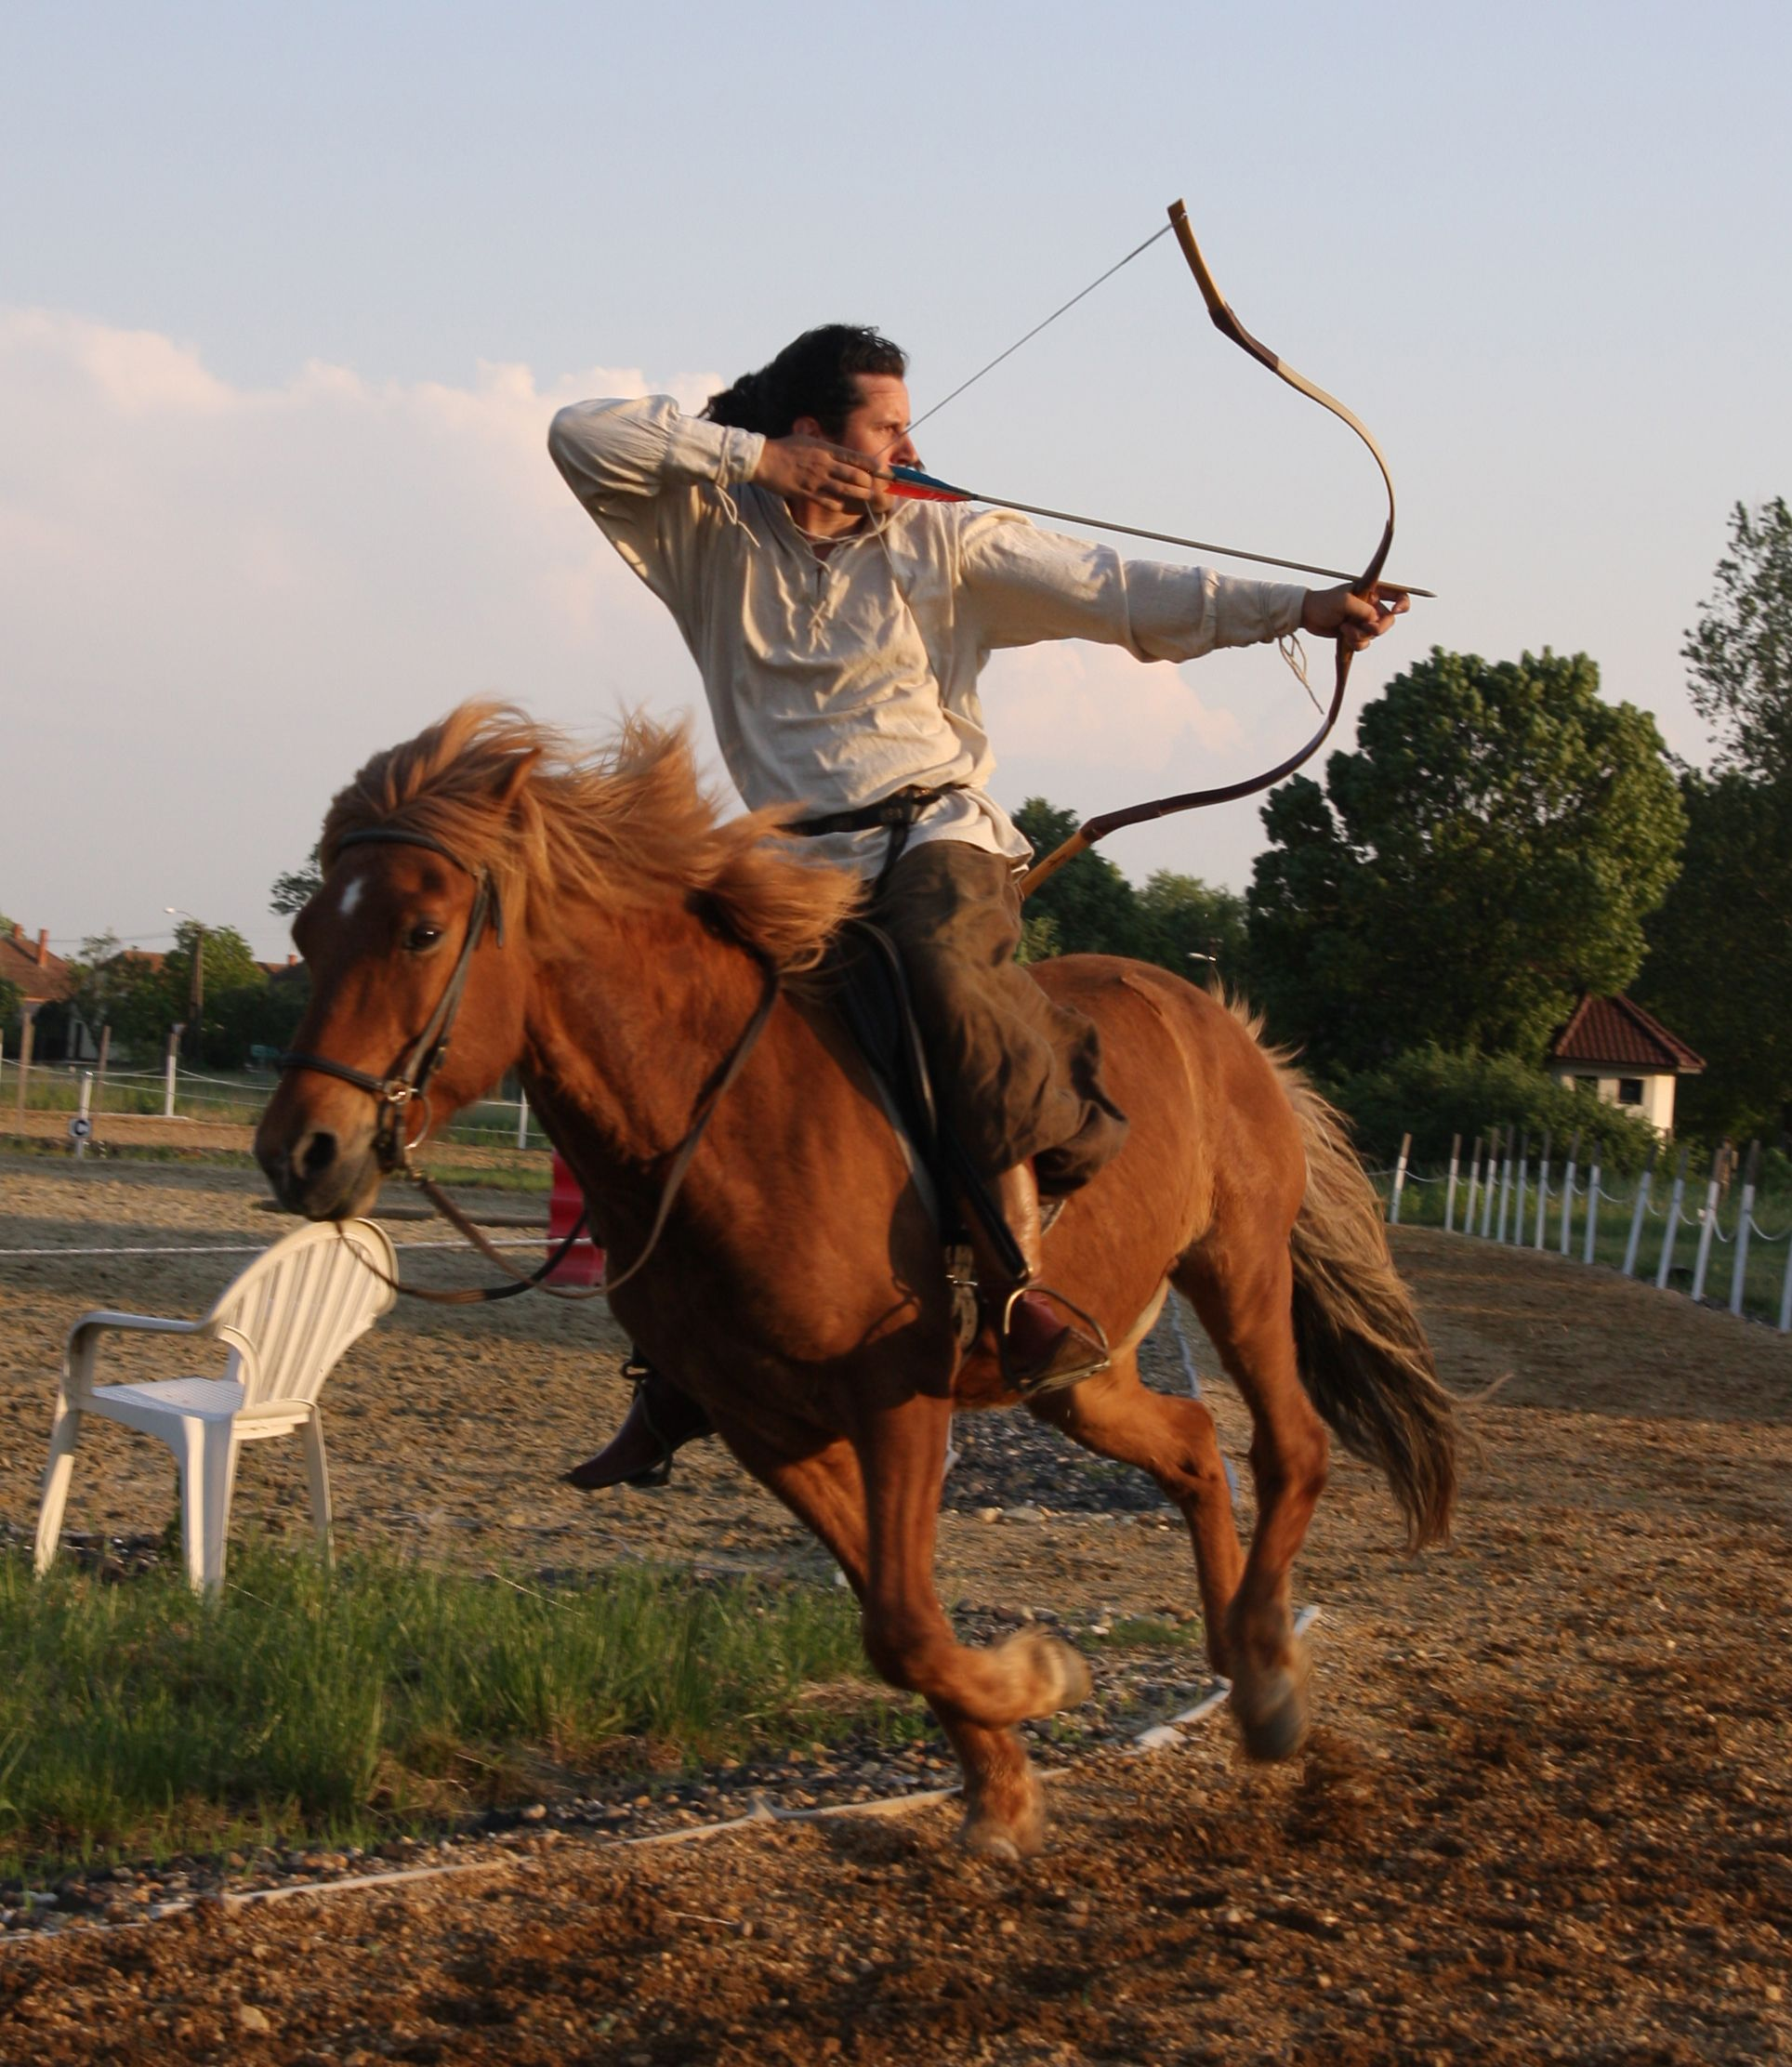 GUY ON A HORSE SHOOT'N (With images) Archery, Lovak, Képek